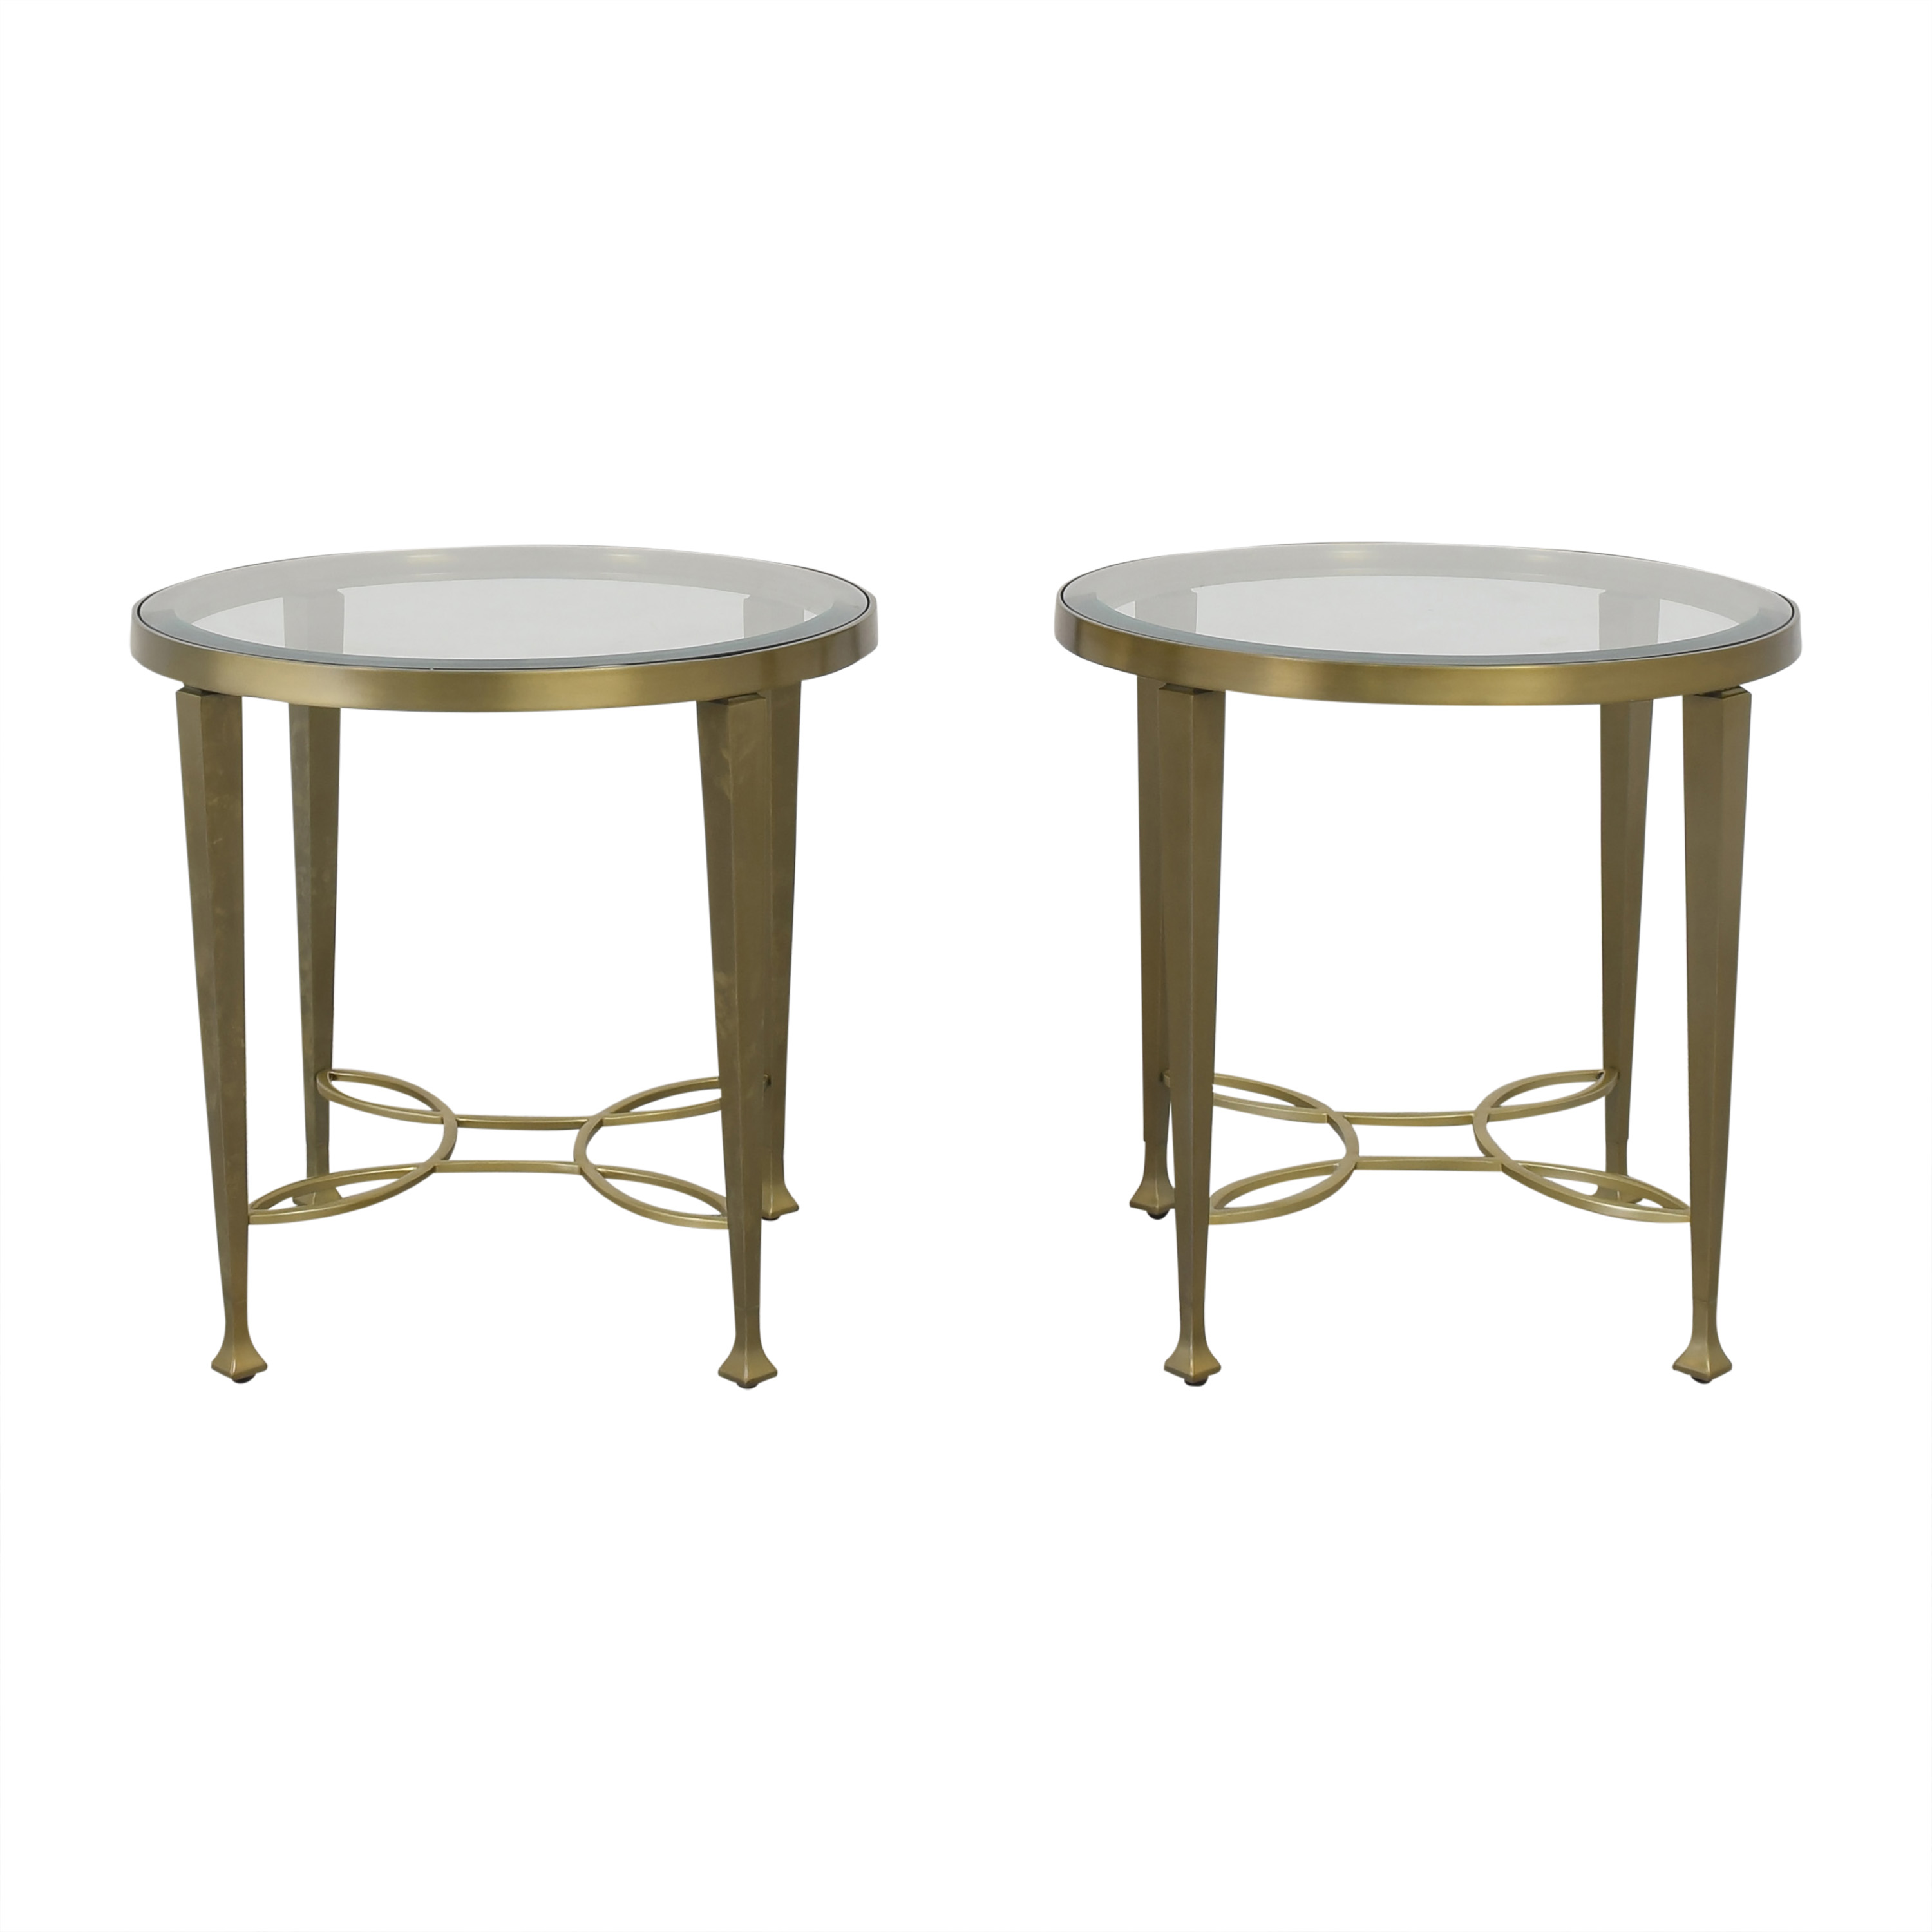 Thomasville Thomasville Round End Tables nyc